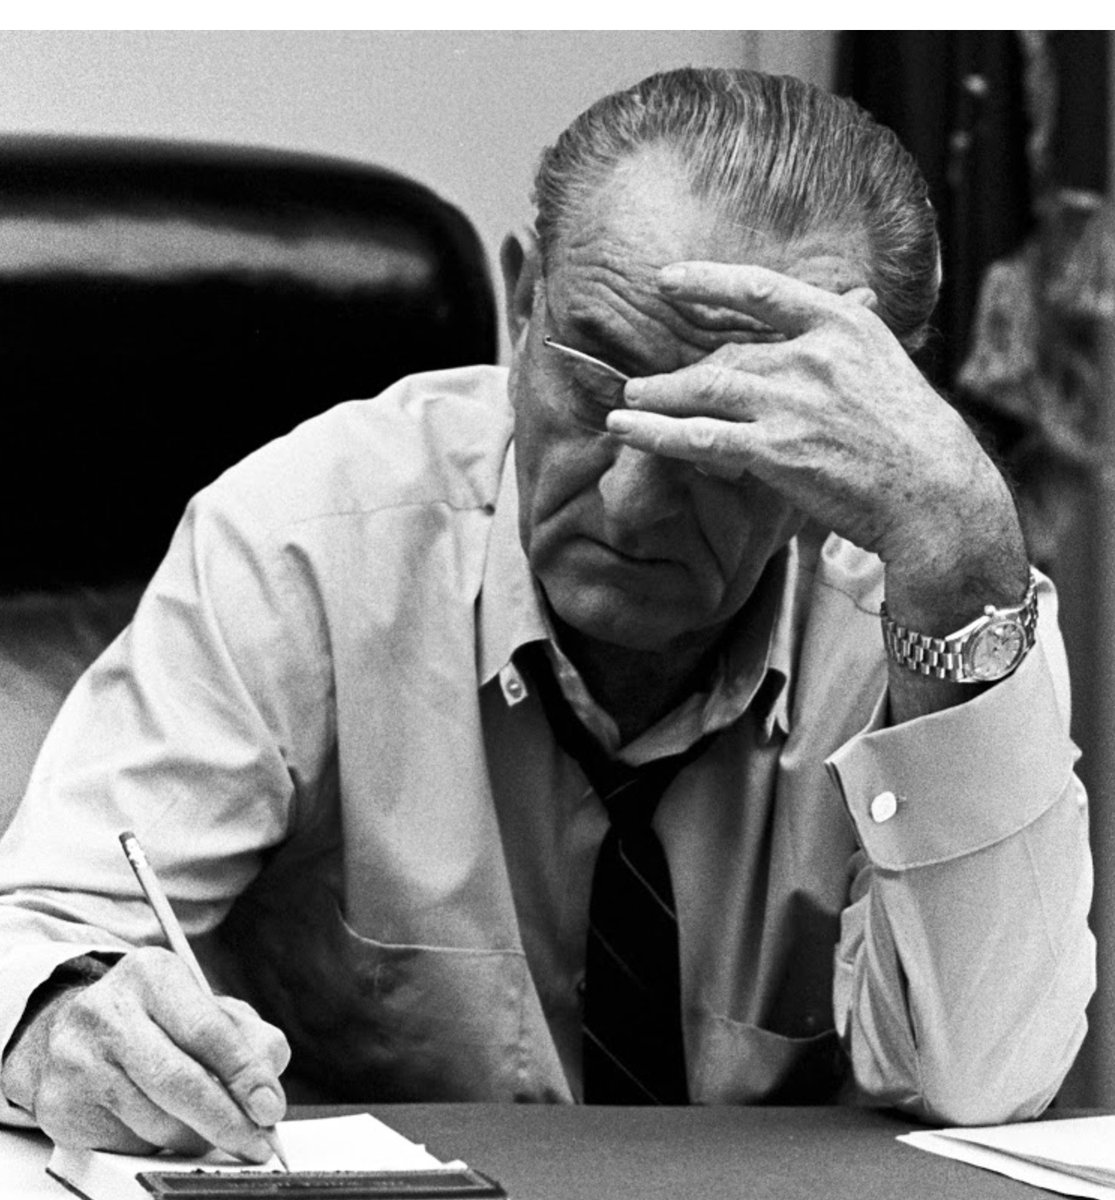 Lyndon Johnson may have worn a Rolex, but he got a lot done for the poor, suffering and disenfranchised: